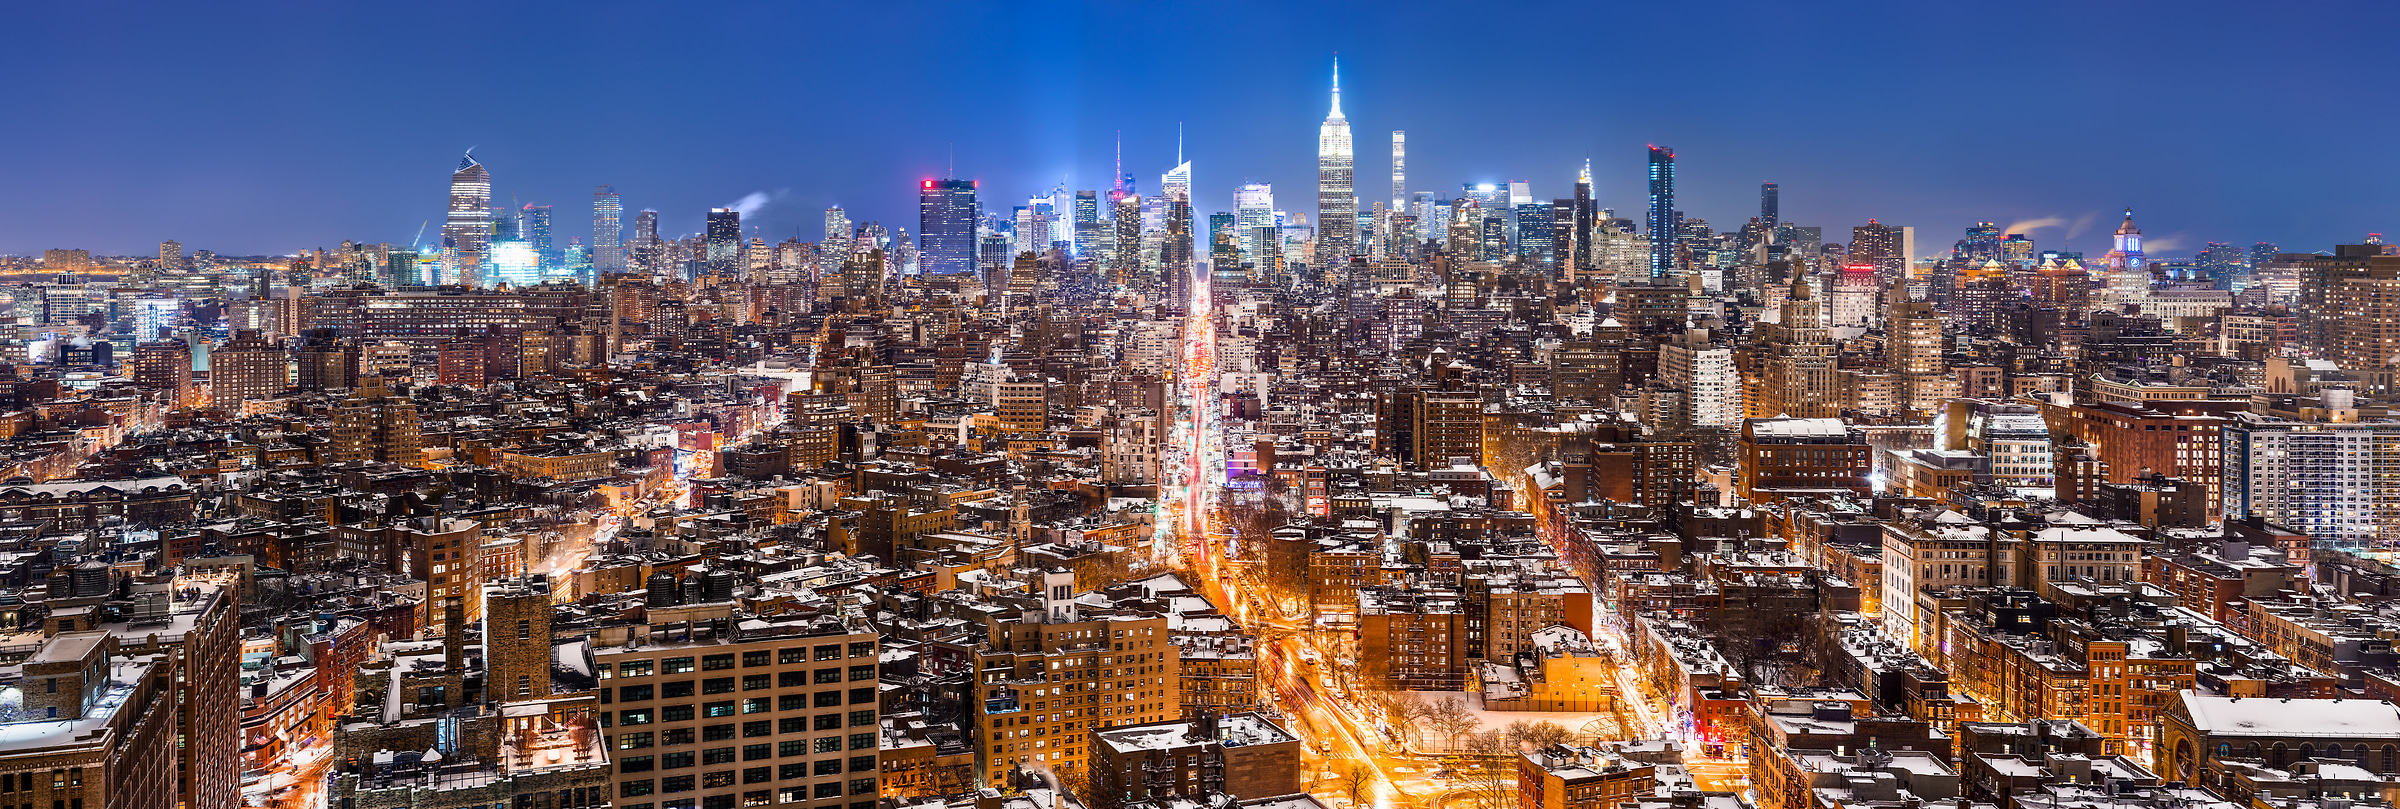 5,910 megapixels! A very high resolution, large-format VAST photo print of the NYC skyline in winter snow at night; cityscape fine art photo created by Dan Piech in New York City